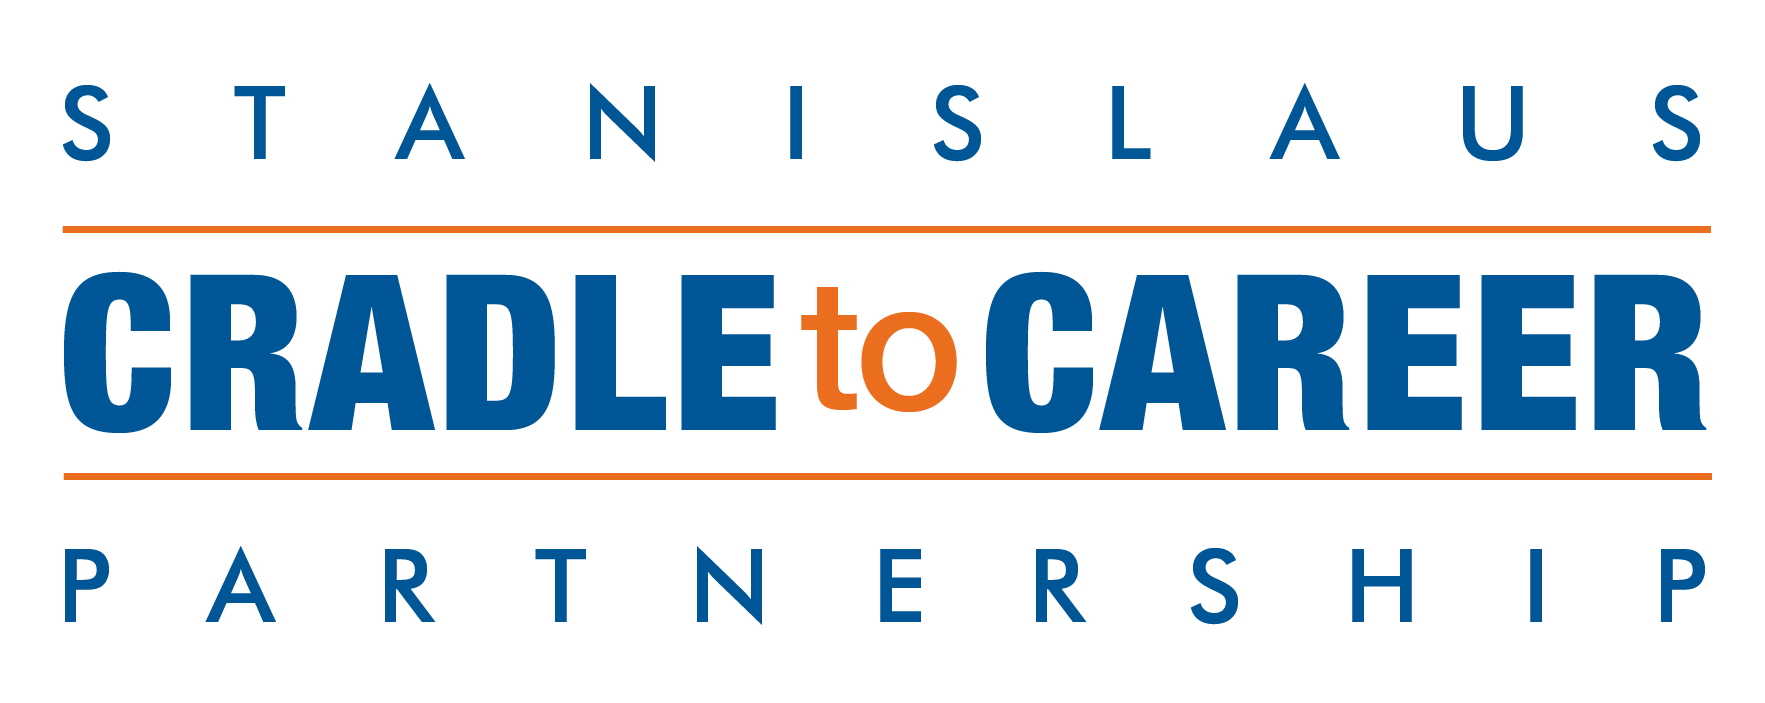 Cradle to Career logo